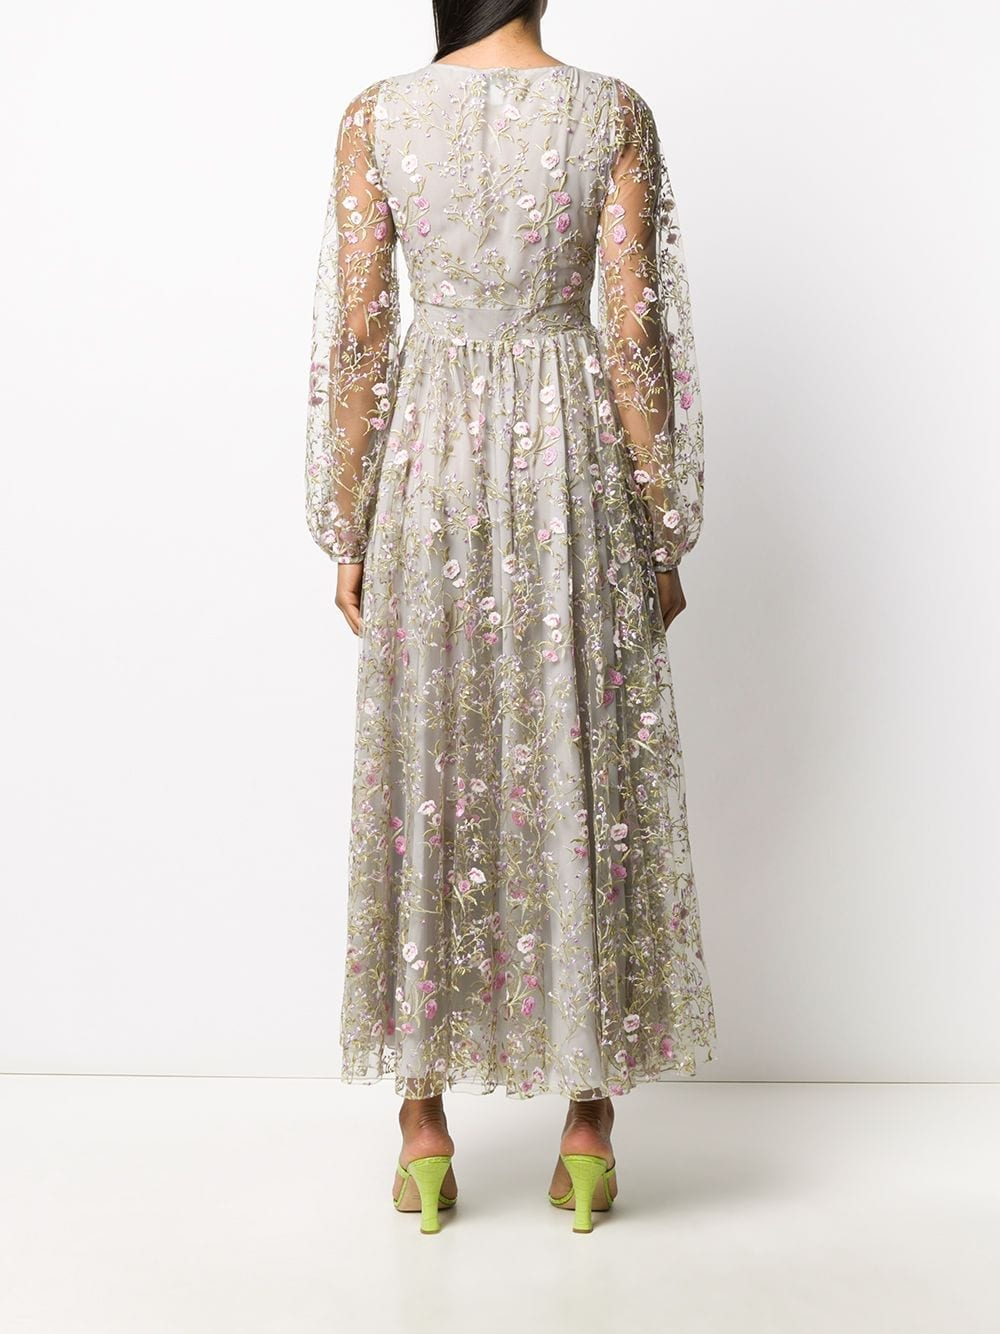 GIAMBATTISTA VALLI All-over Floral Embroidered Sheer Puff Sleeves Dress